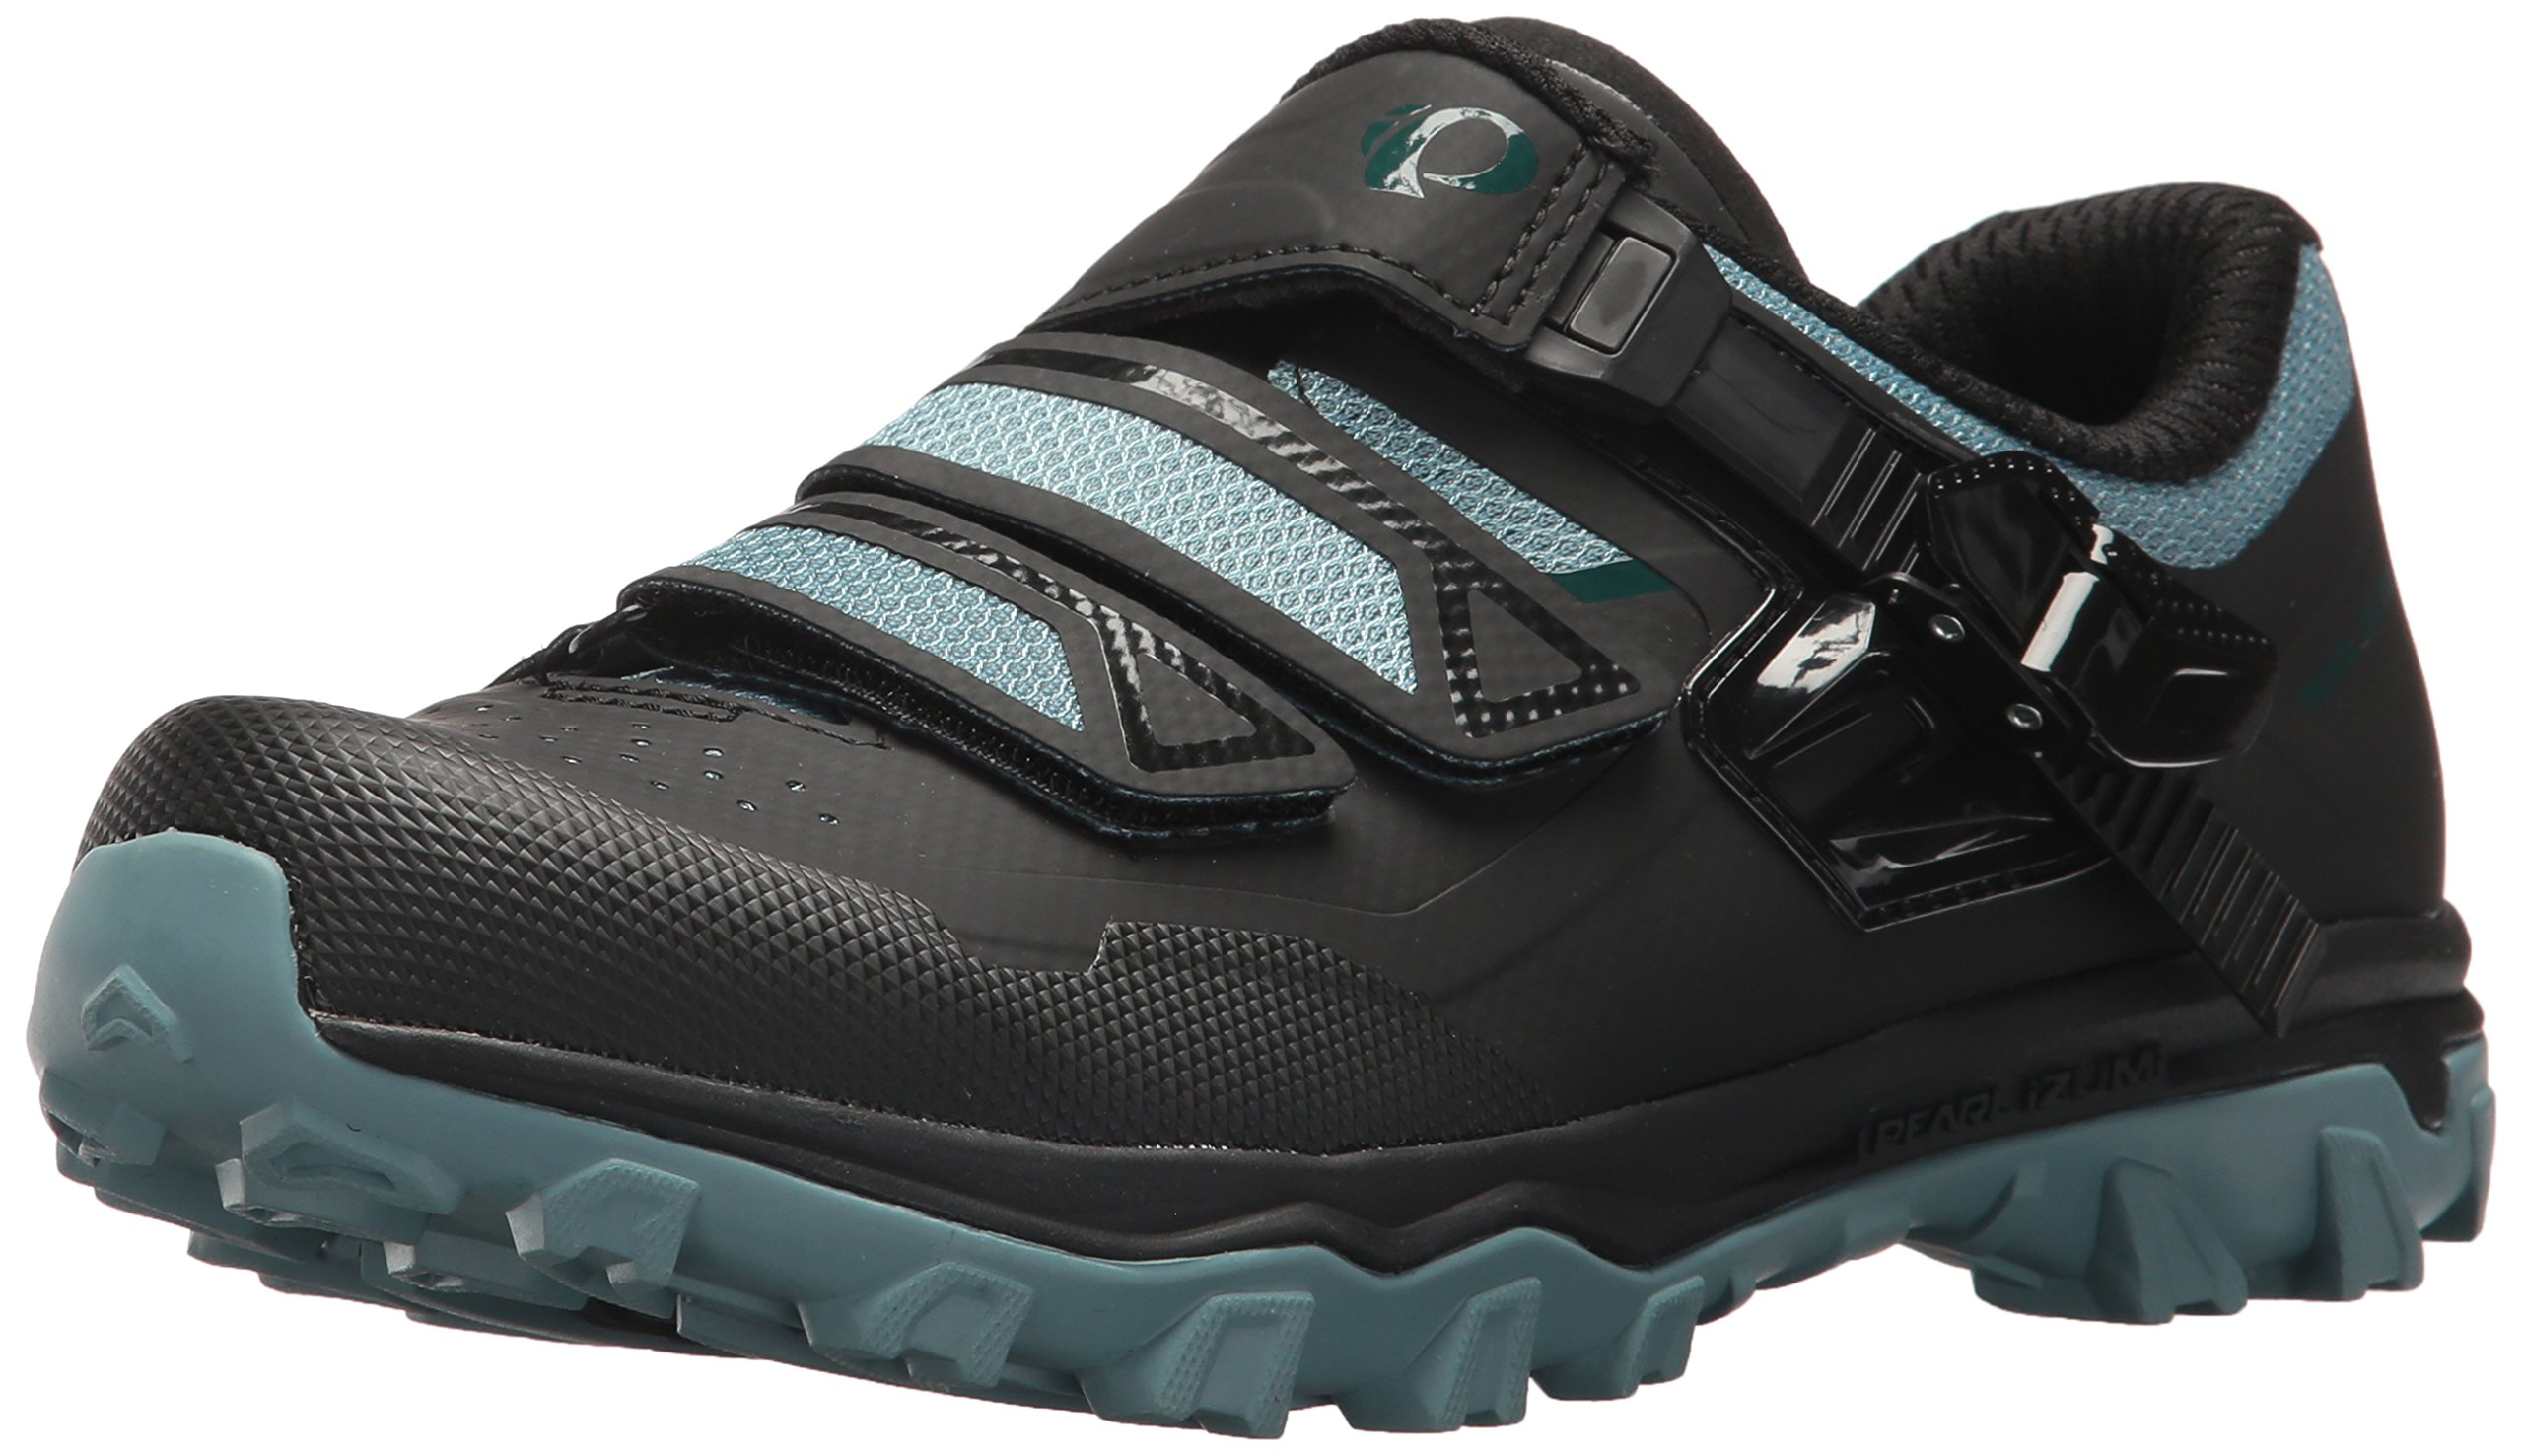 Pearl iZUMi Men's X-Alp Summit Cycling Shoe, Arctic/Black, 39.0 M EU (6.1 US)